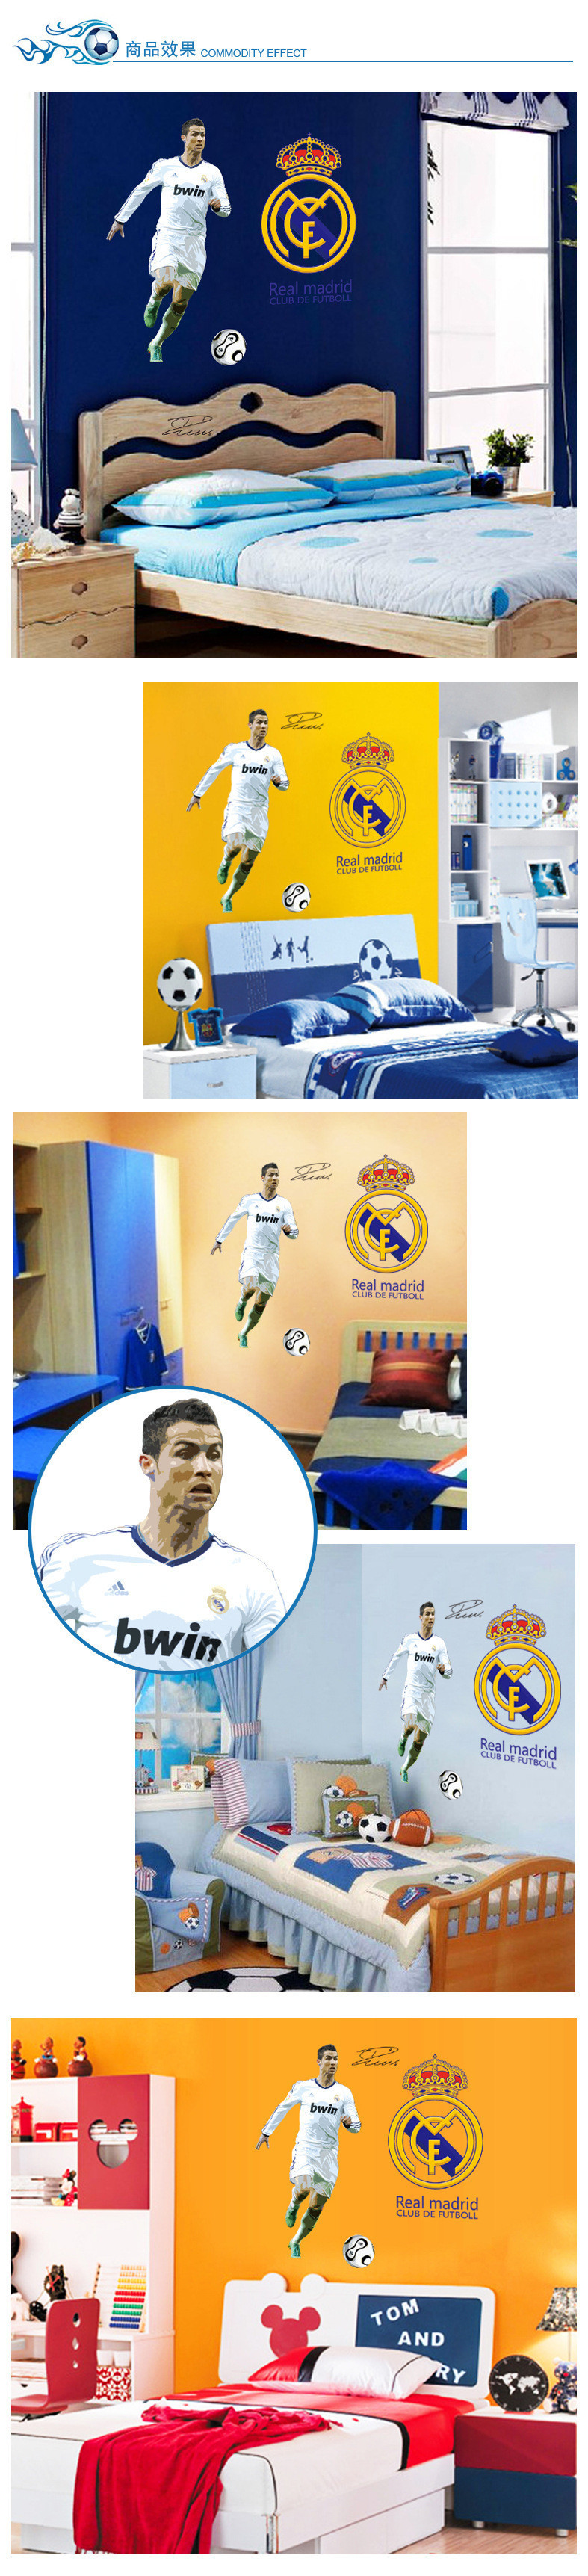 Grand sticker geant mural 110x90 christiano ronaldo cr7 for Pochoir mural geant